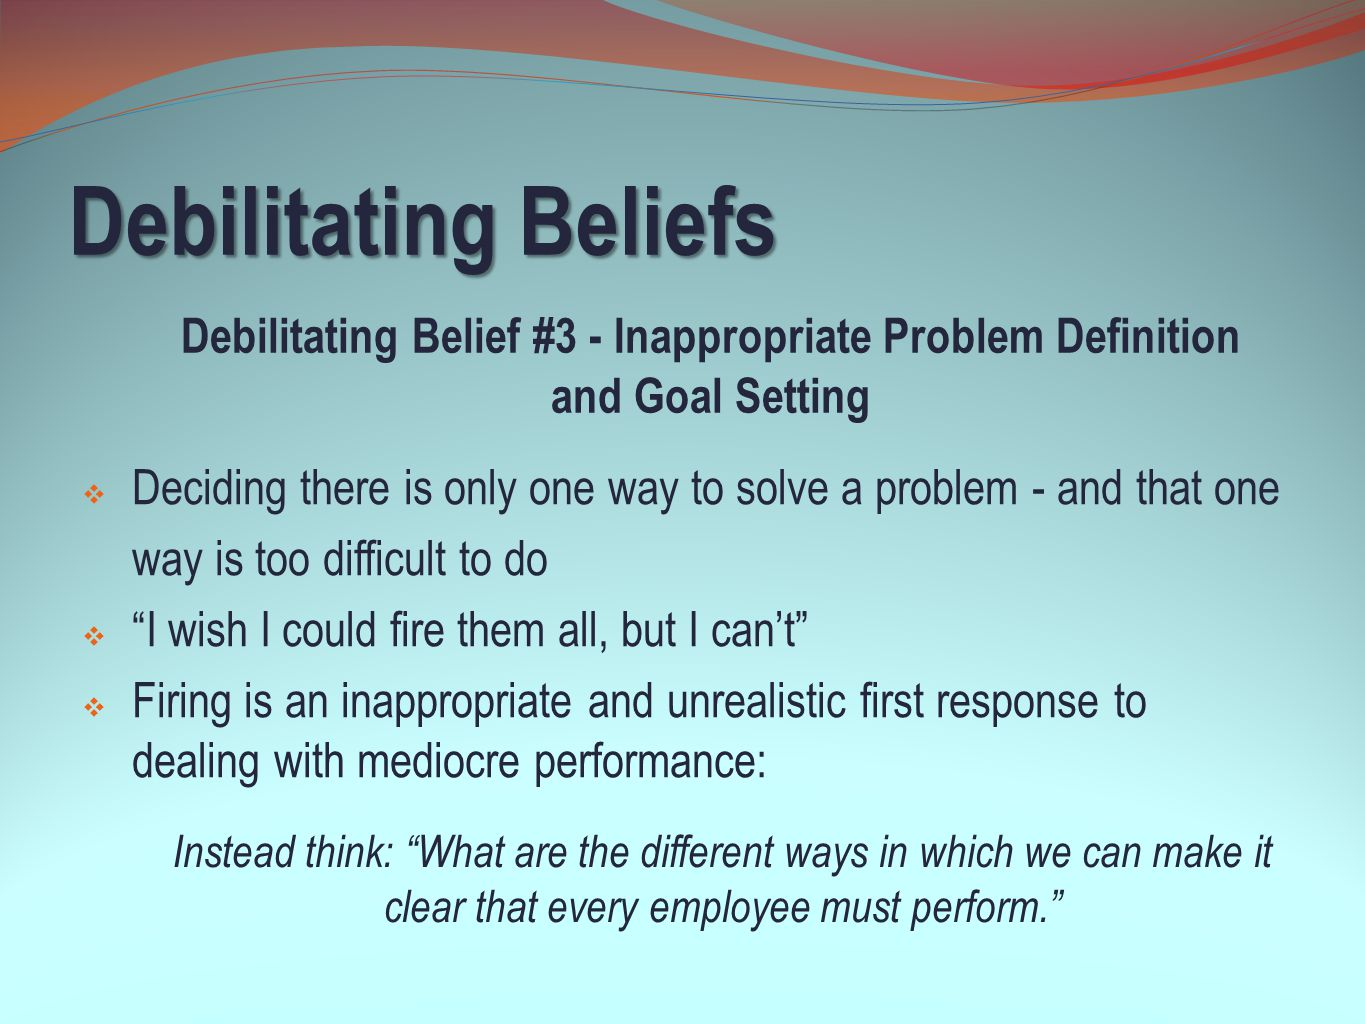 Debilitating Beliefs Debilitating Belief #3 - Inappropriate Problem Definition and Goal Setting.